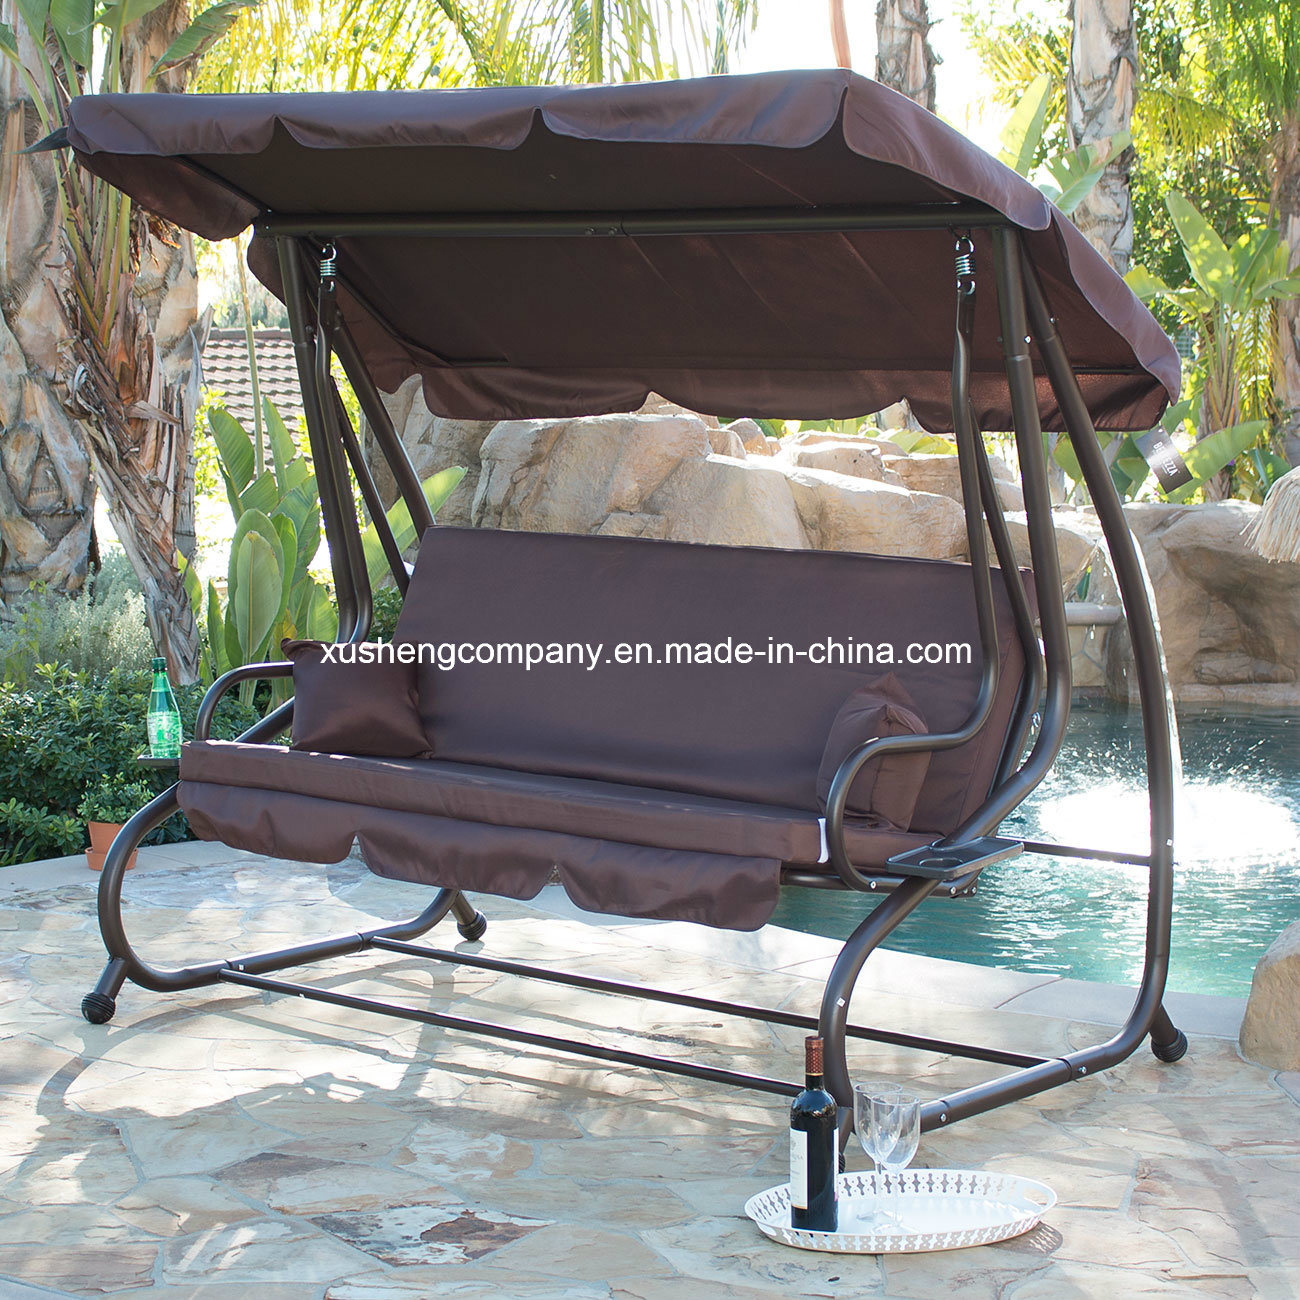 Deluxe 3 Seater Patio Garden Swing Chair/Bed with 2 Pillows pictures & photos